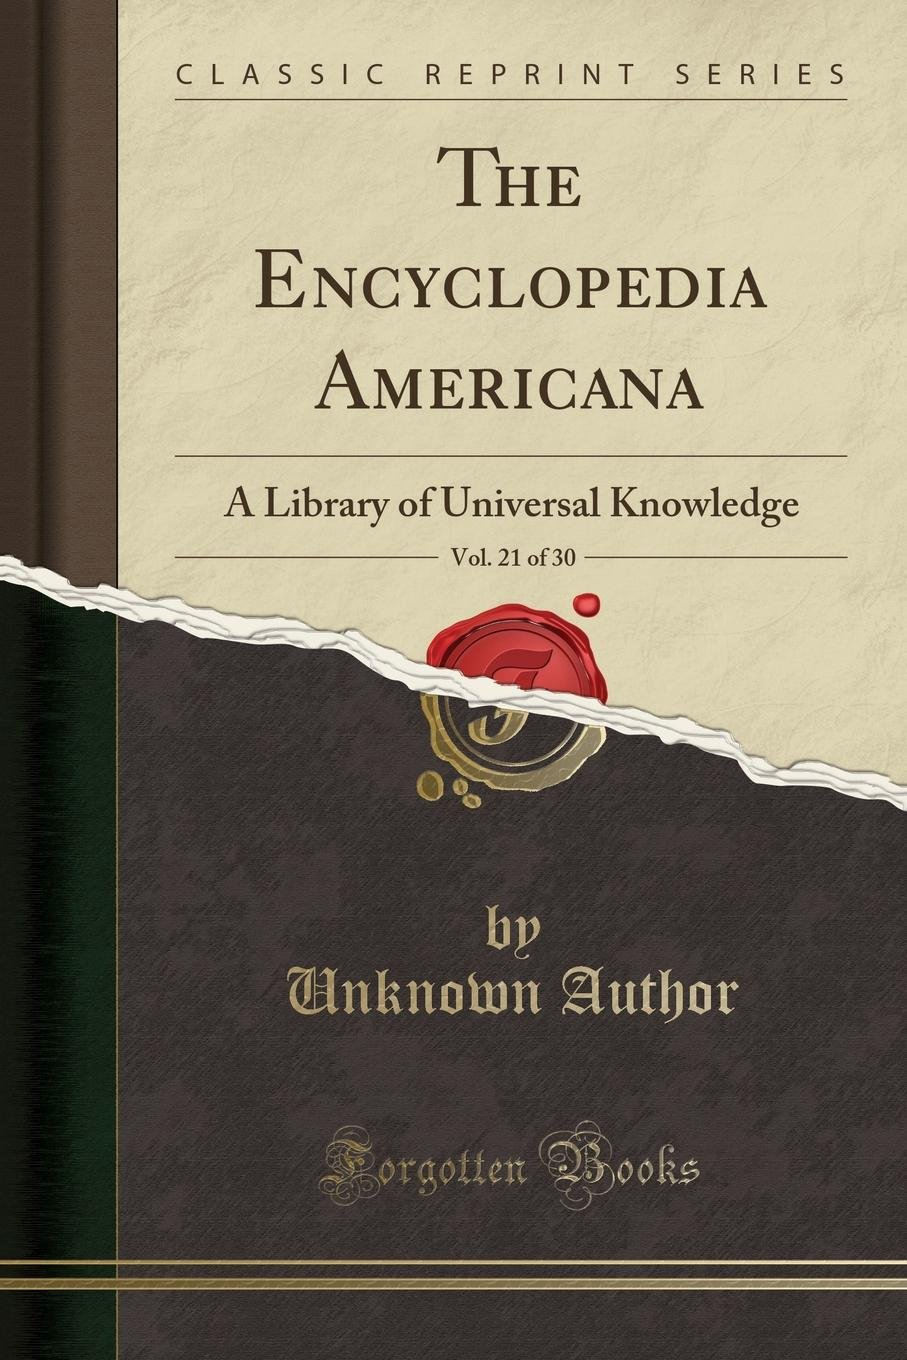 The Encyclopedia Americana, Vol. 21 of 30: A Library of Universal Knowledge (Classic Reprint) PDF